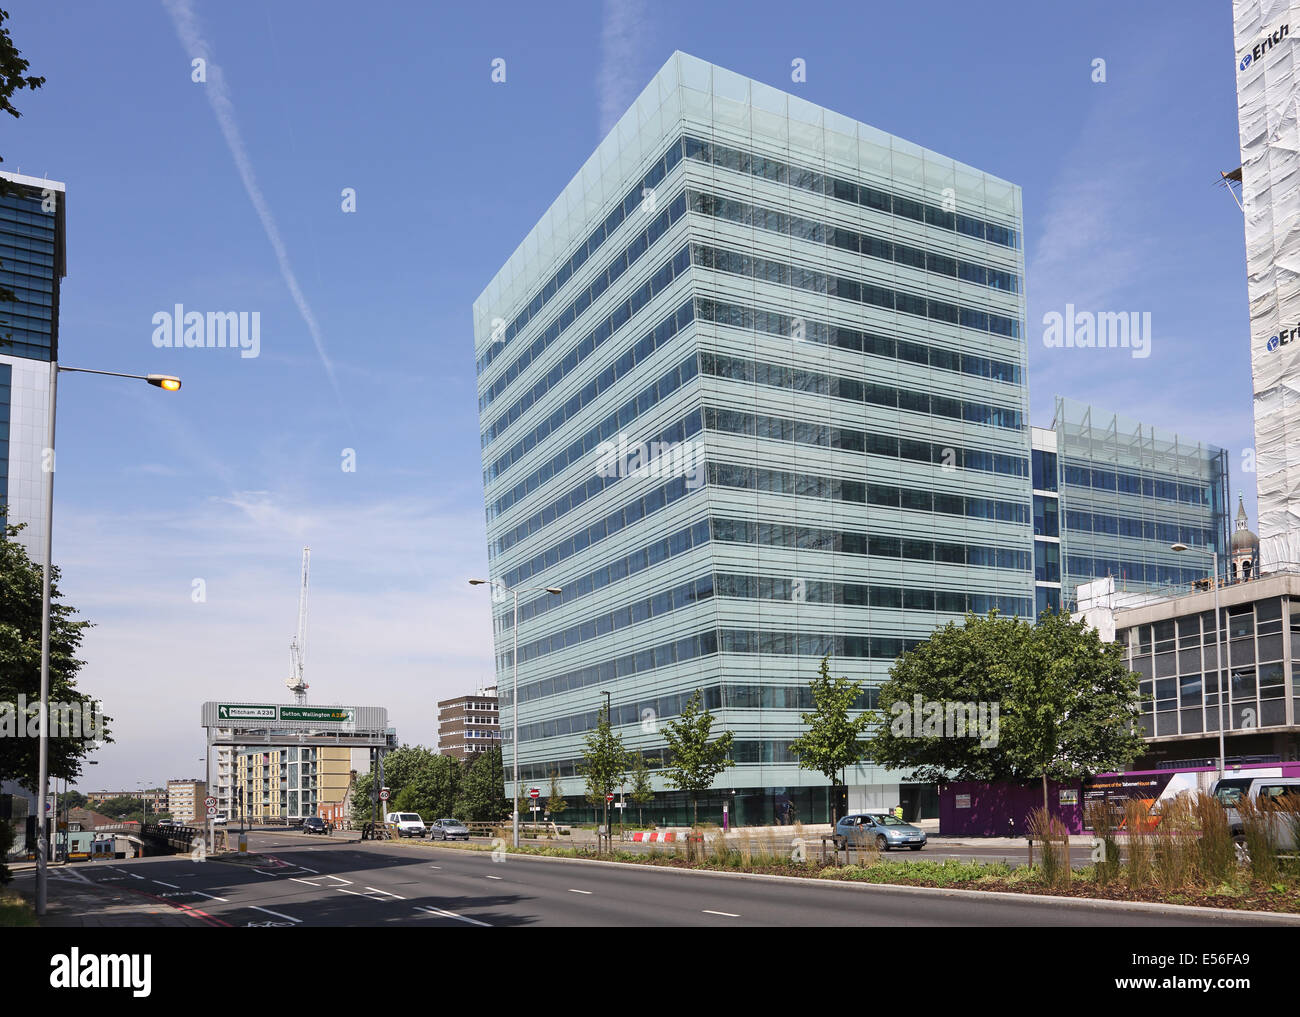 Bernard Weatherill House, Croydon Council's controversial new 'Hub' headquarters building next to Croydon - Stock Image